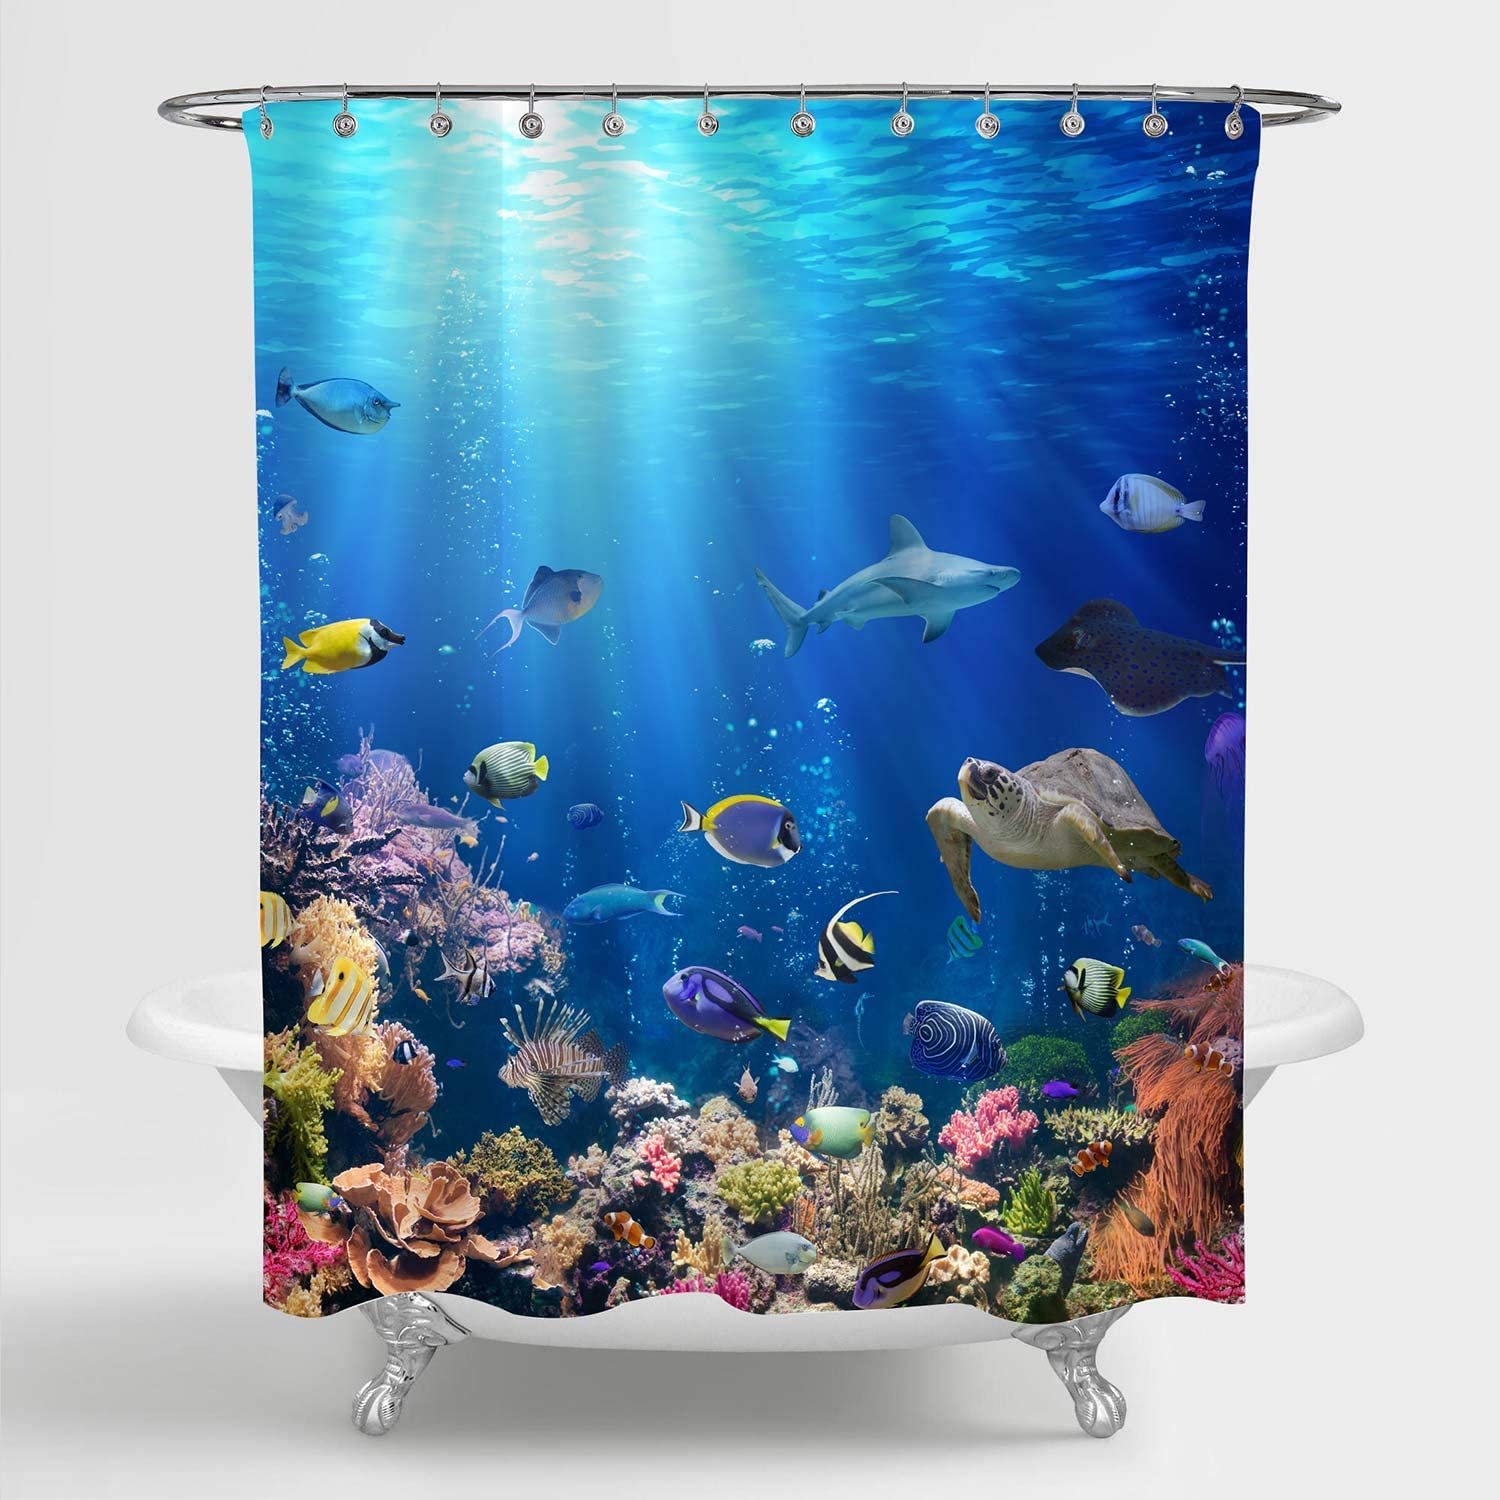 "MitoVilla 3D Ocean Fish Shower Curtain Set with Hooks, Nature Scenic of Tropical Fish, Turtle, Shark in the Sea Bathroom Decor for Ocean Themed Home, Gifts for Women, Men and Kids, Blue, 72"" W x 78"" L"